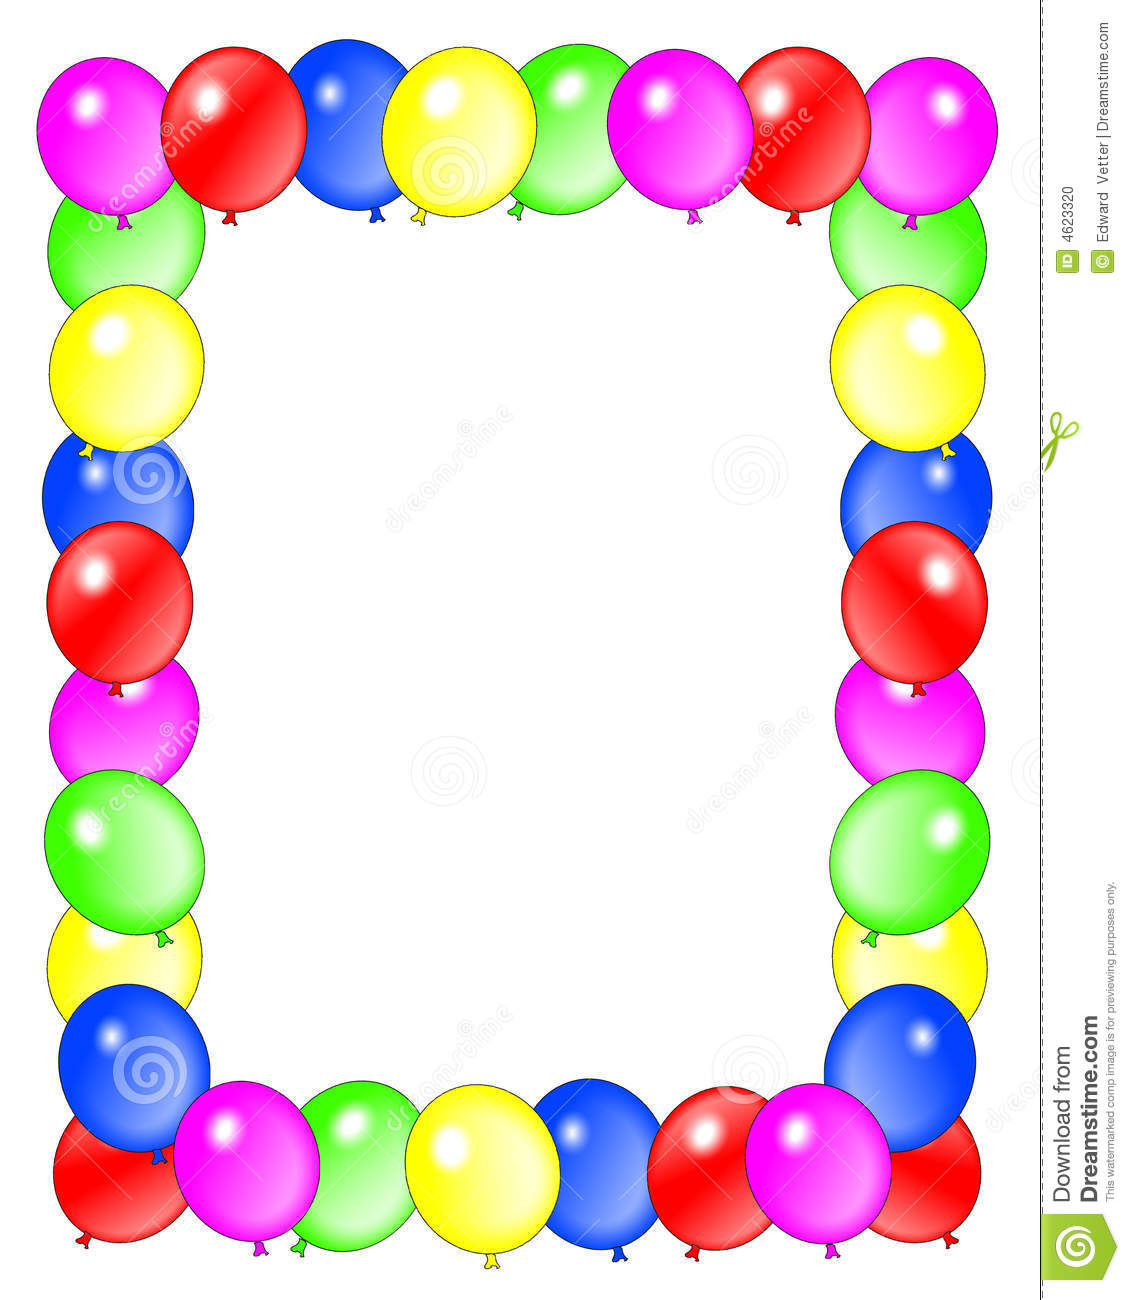 image about Birthday Clipart Free Printable named no cost printable birthday borders and frames